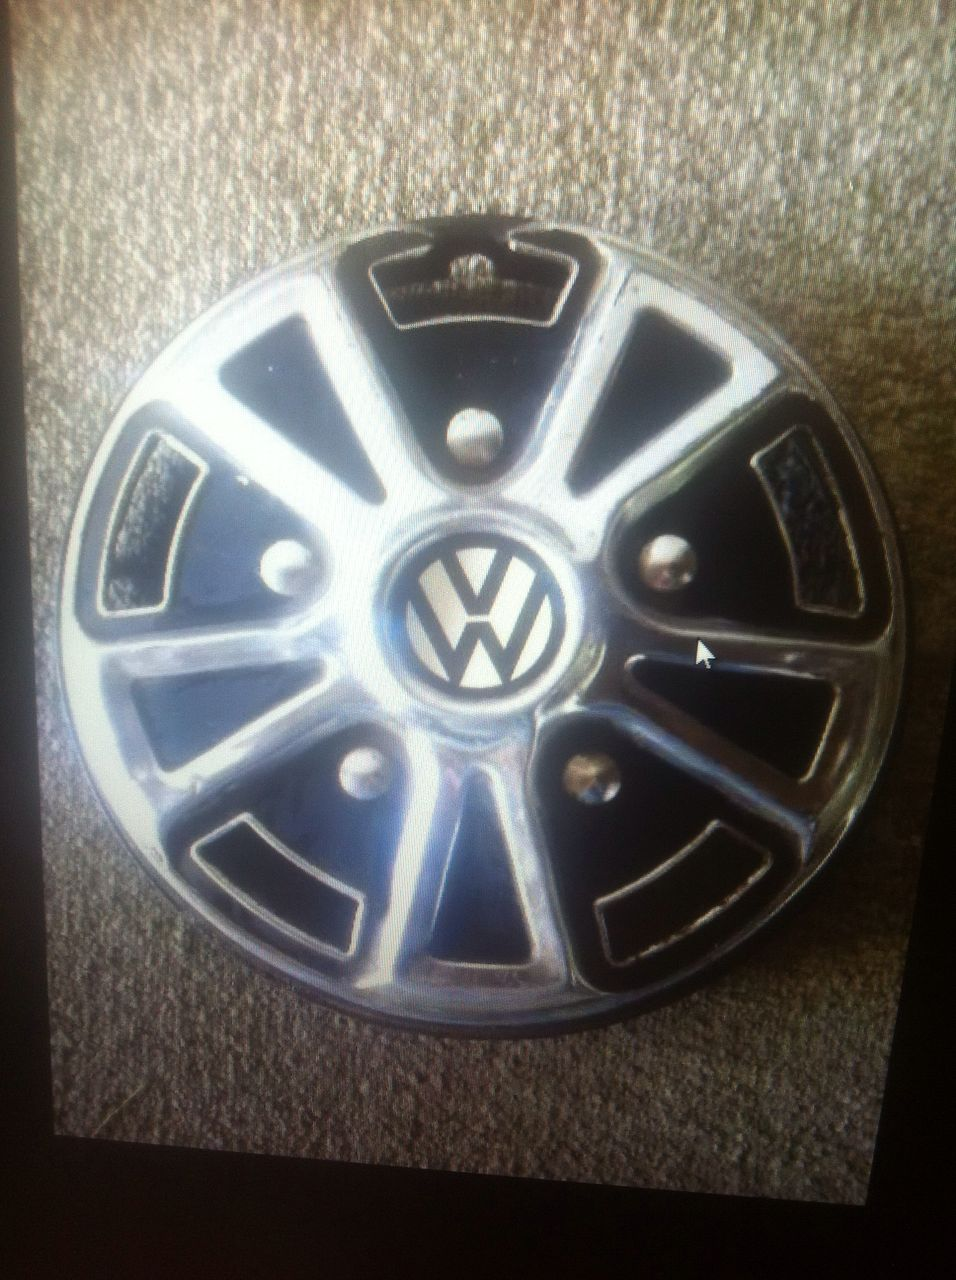 VW, older model: 12 inch wheel cap